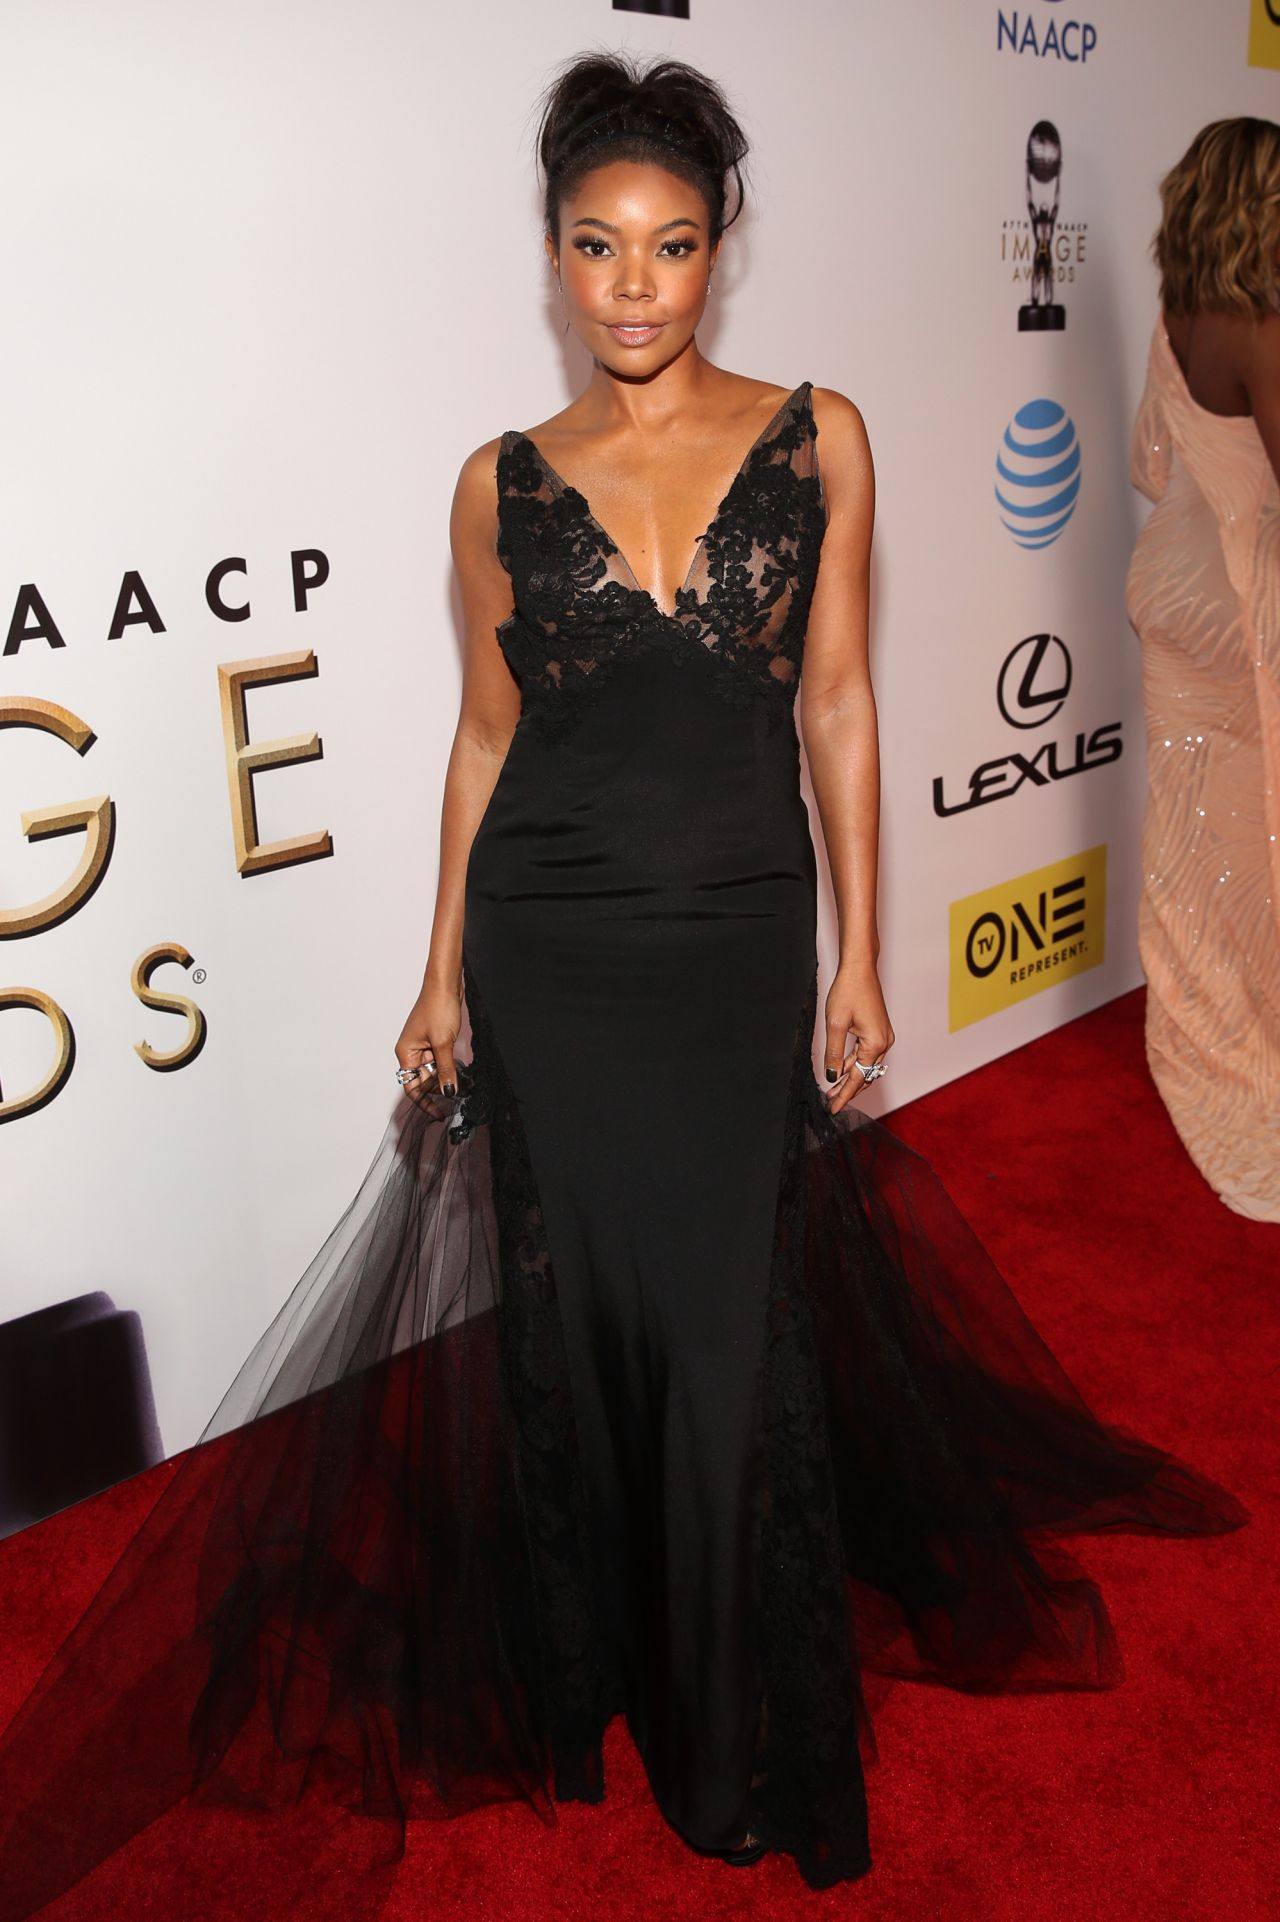 gabrielle-union-naacp-image-awards-2016-presented-by-tv-one-in-pasadena-ca-7